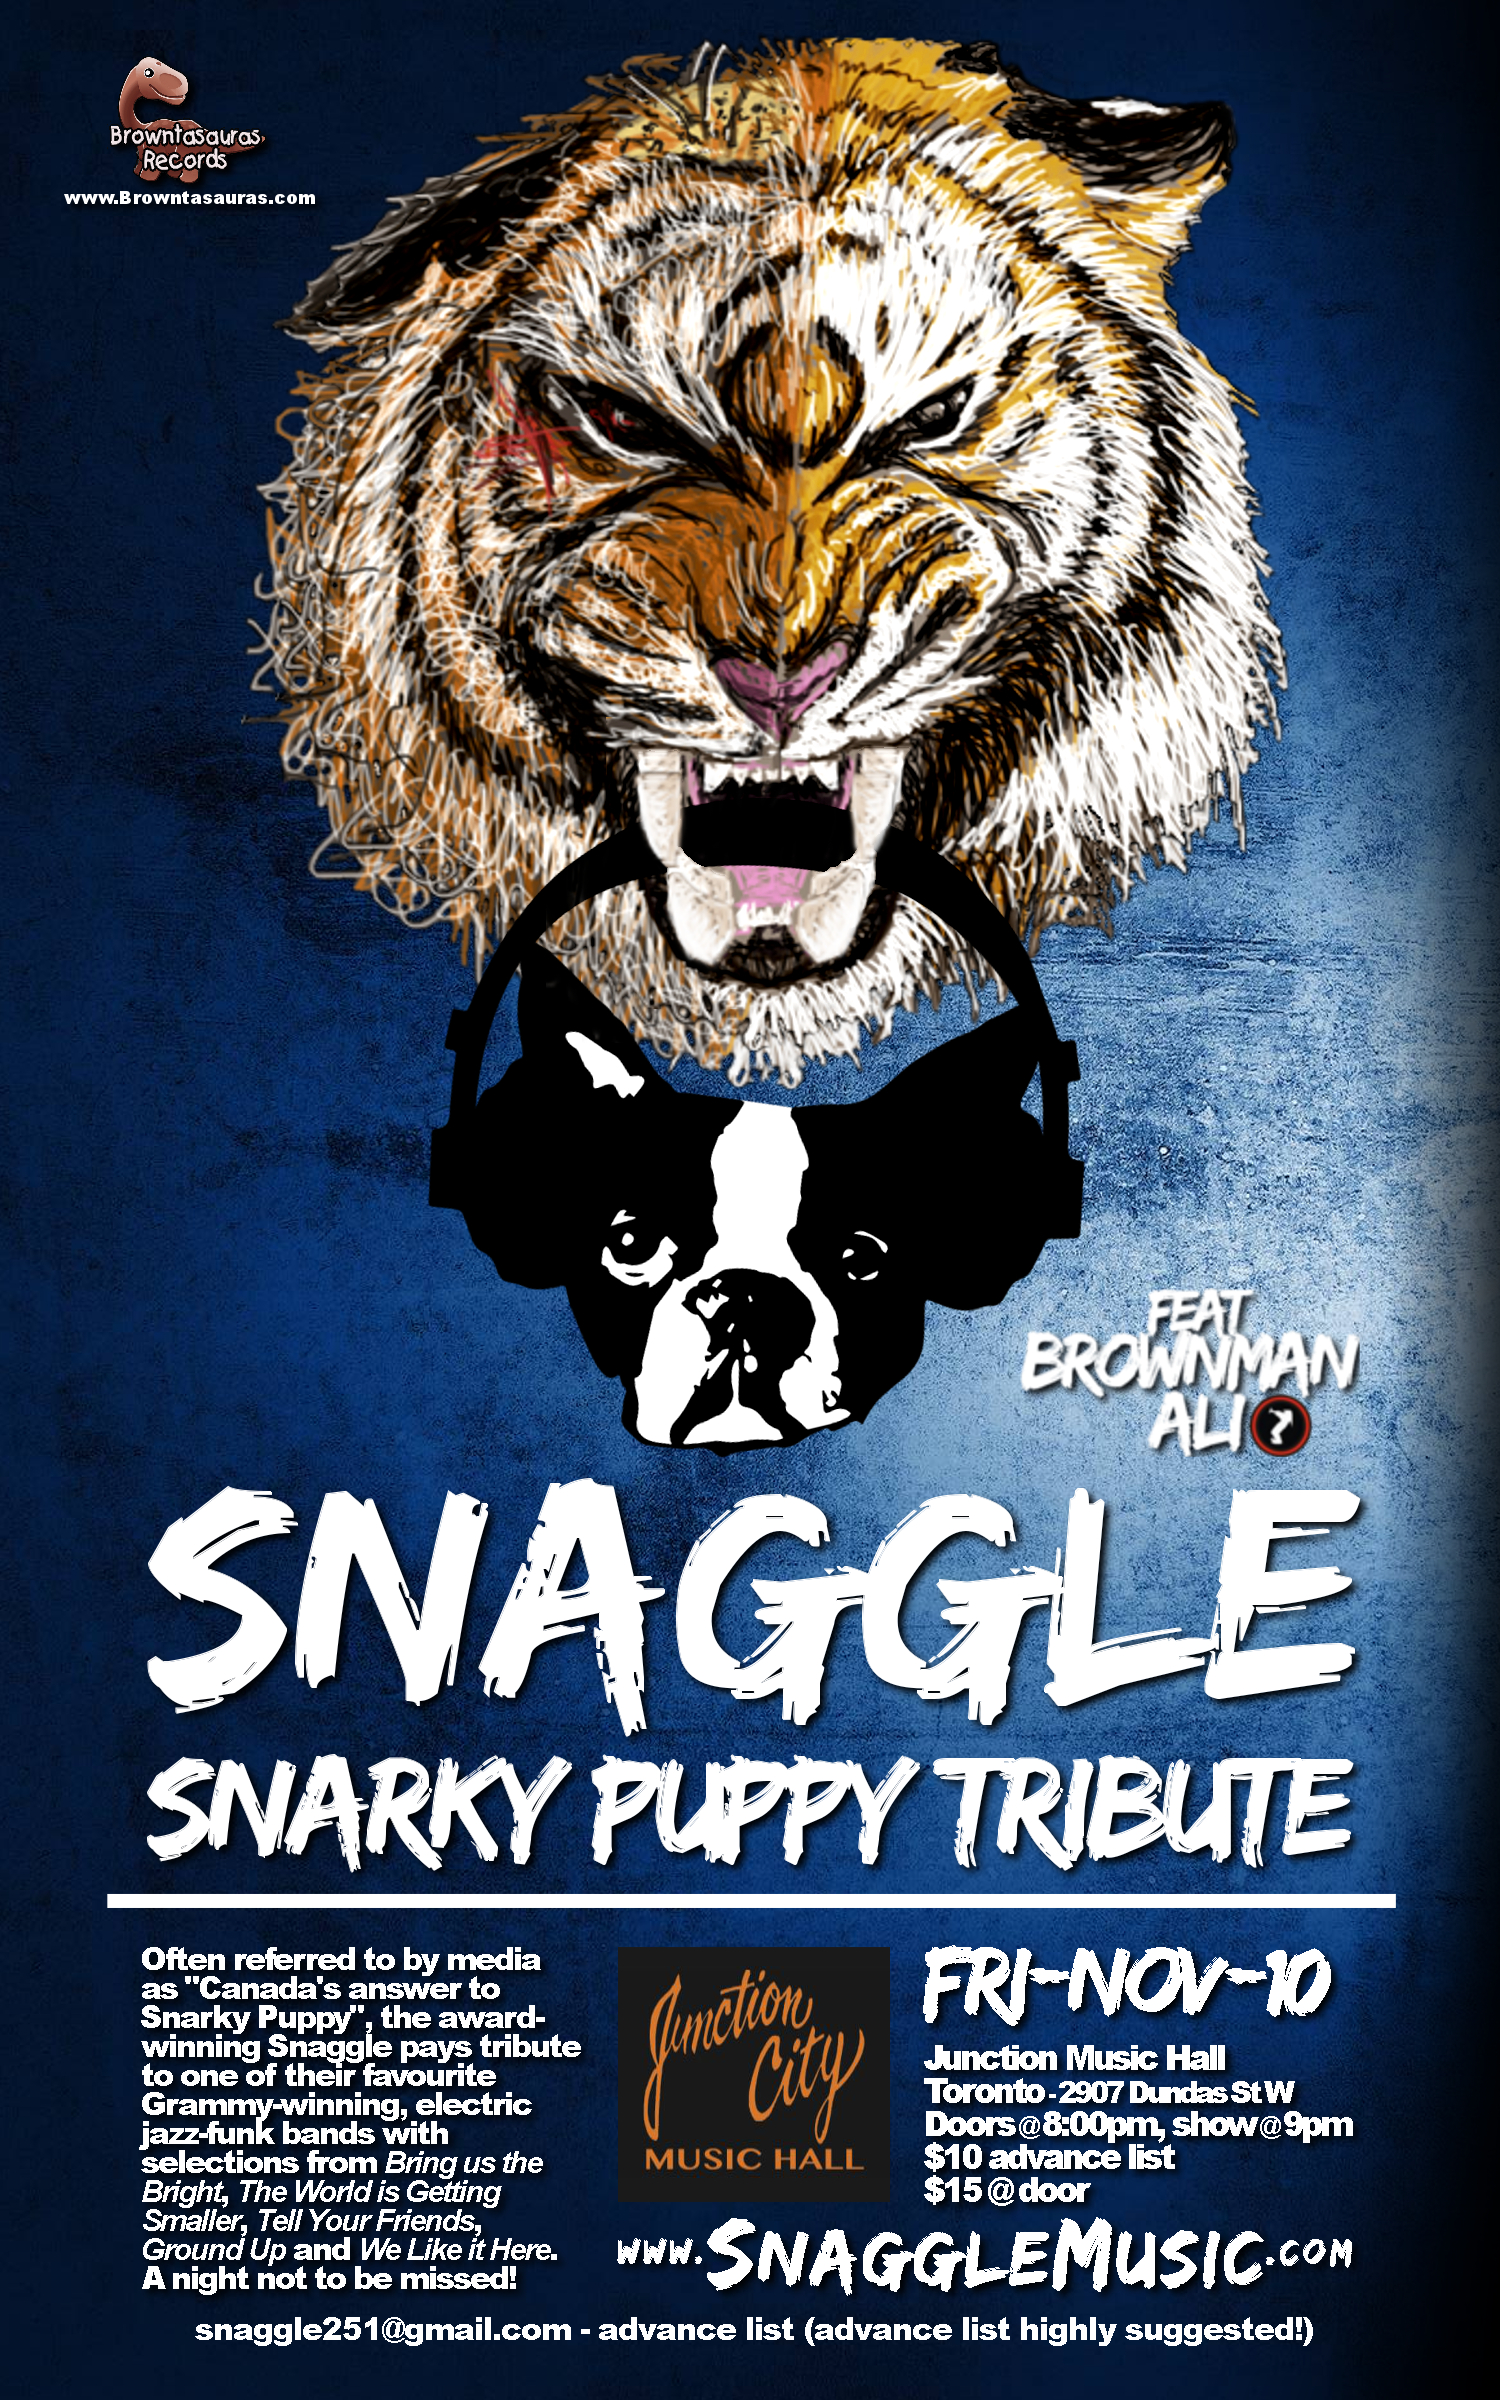 SnarkyPuppyTribute_Junction_Nov10_ONLINE